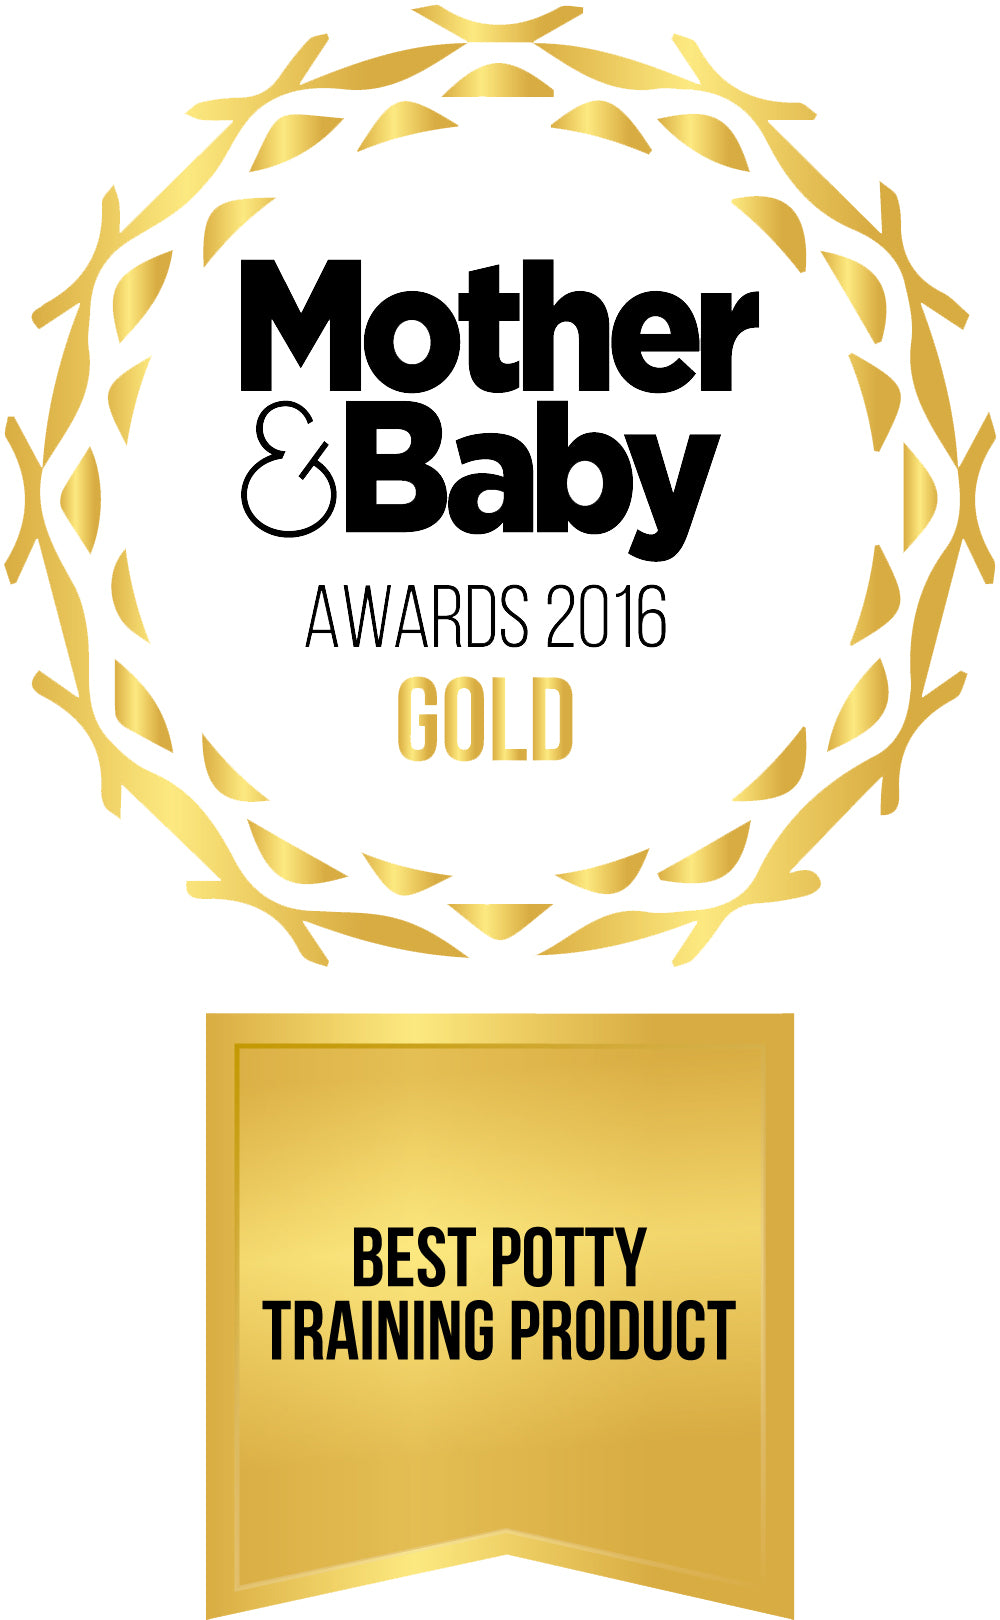 2-in-1 Swim Diapers & Training Pants with Snaps - Mother & Baby Awards Gold 2016